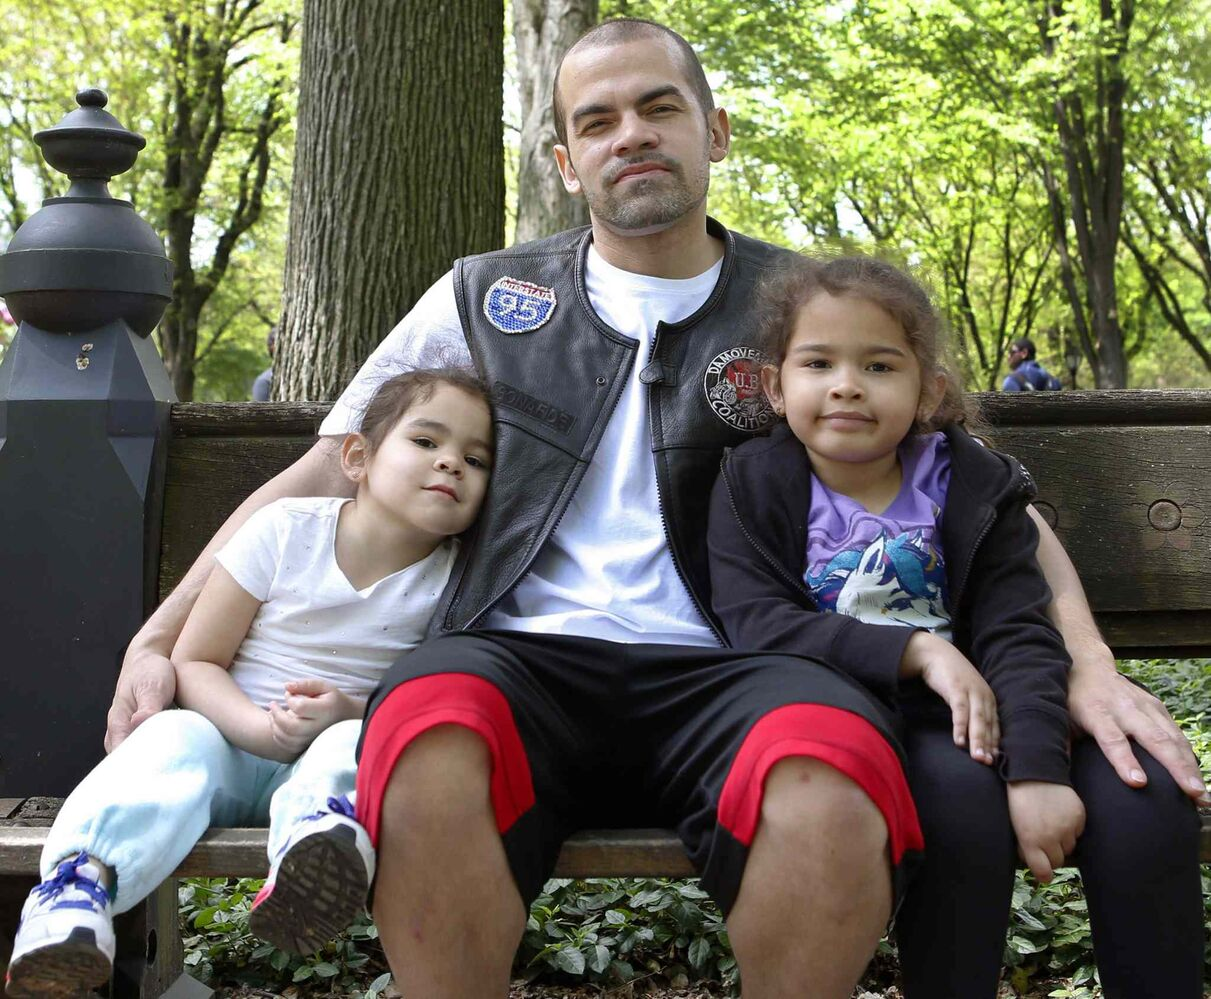 Orlando Lopez, 34, of the Bronx borough of New York, poses for a photograph with his daughters, Sophia, 3, and Roselyann, 5, after a walkathon in New York's Central Park. When asked for his thoughts on fatherhood, Lopez, who has the girls' names tattooed on his arms, said,